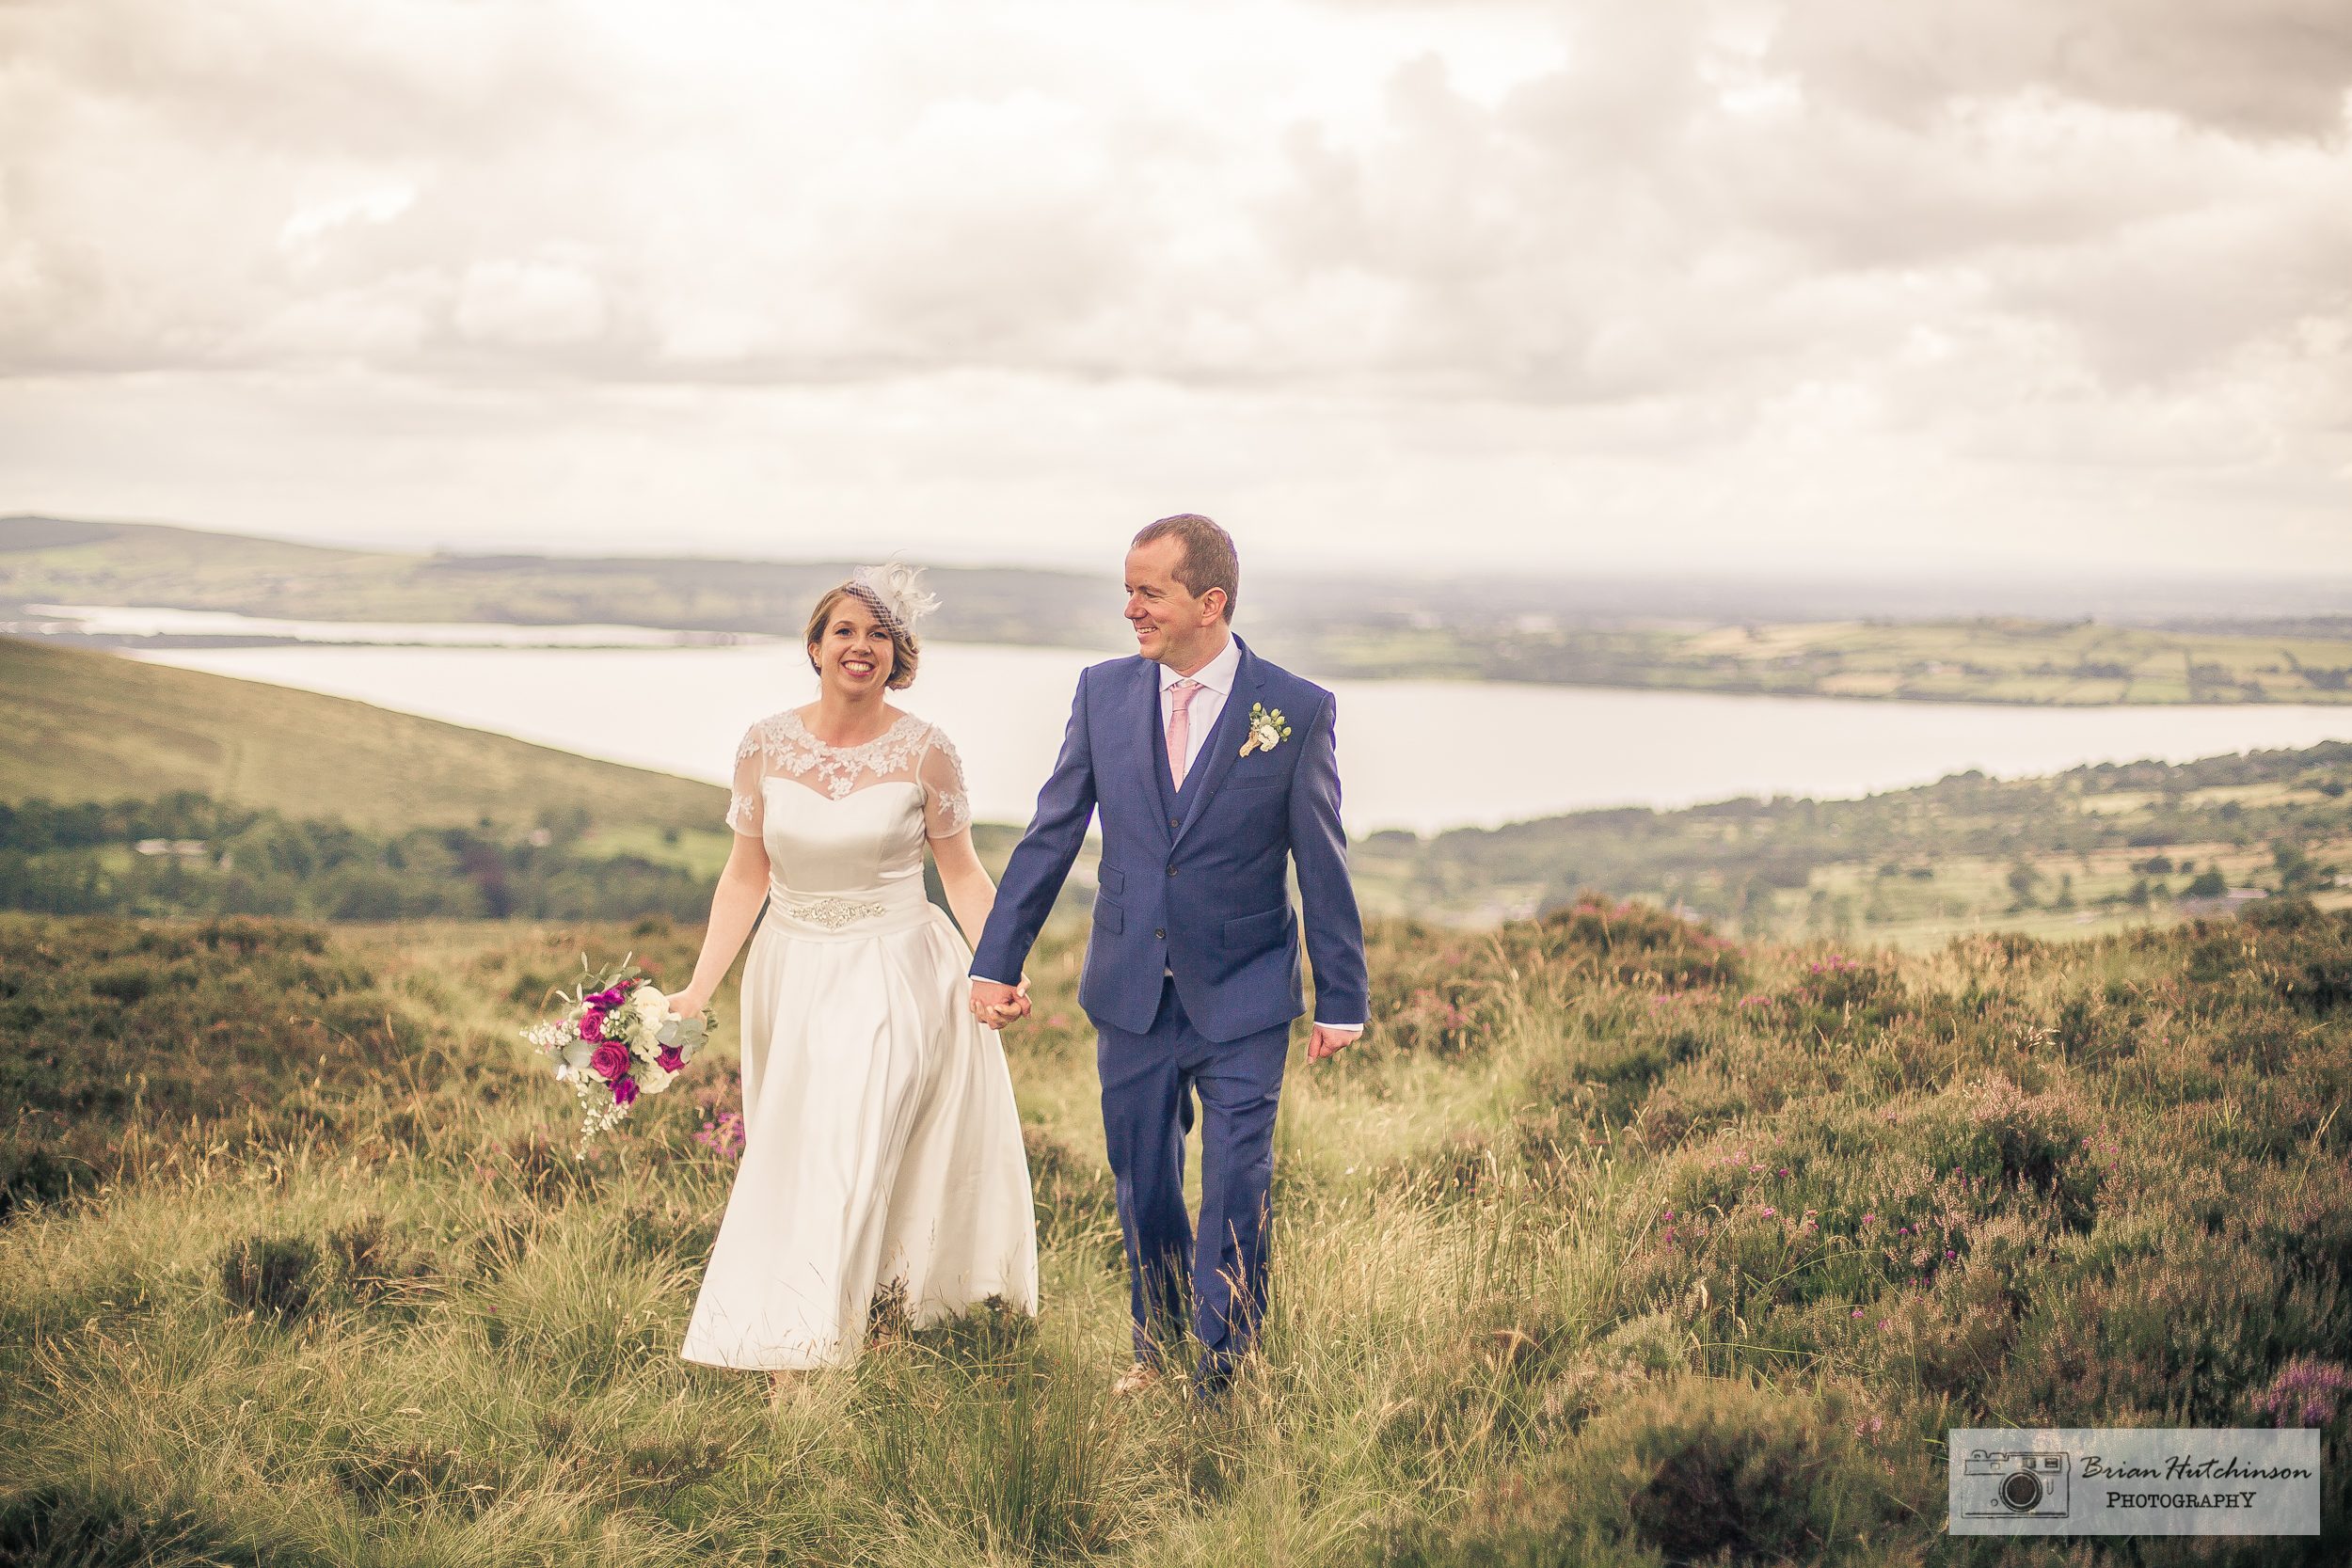 Blessington Wedding Archives - M&M Wedding Photography